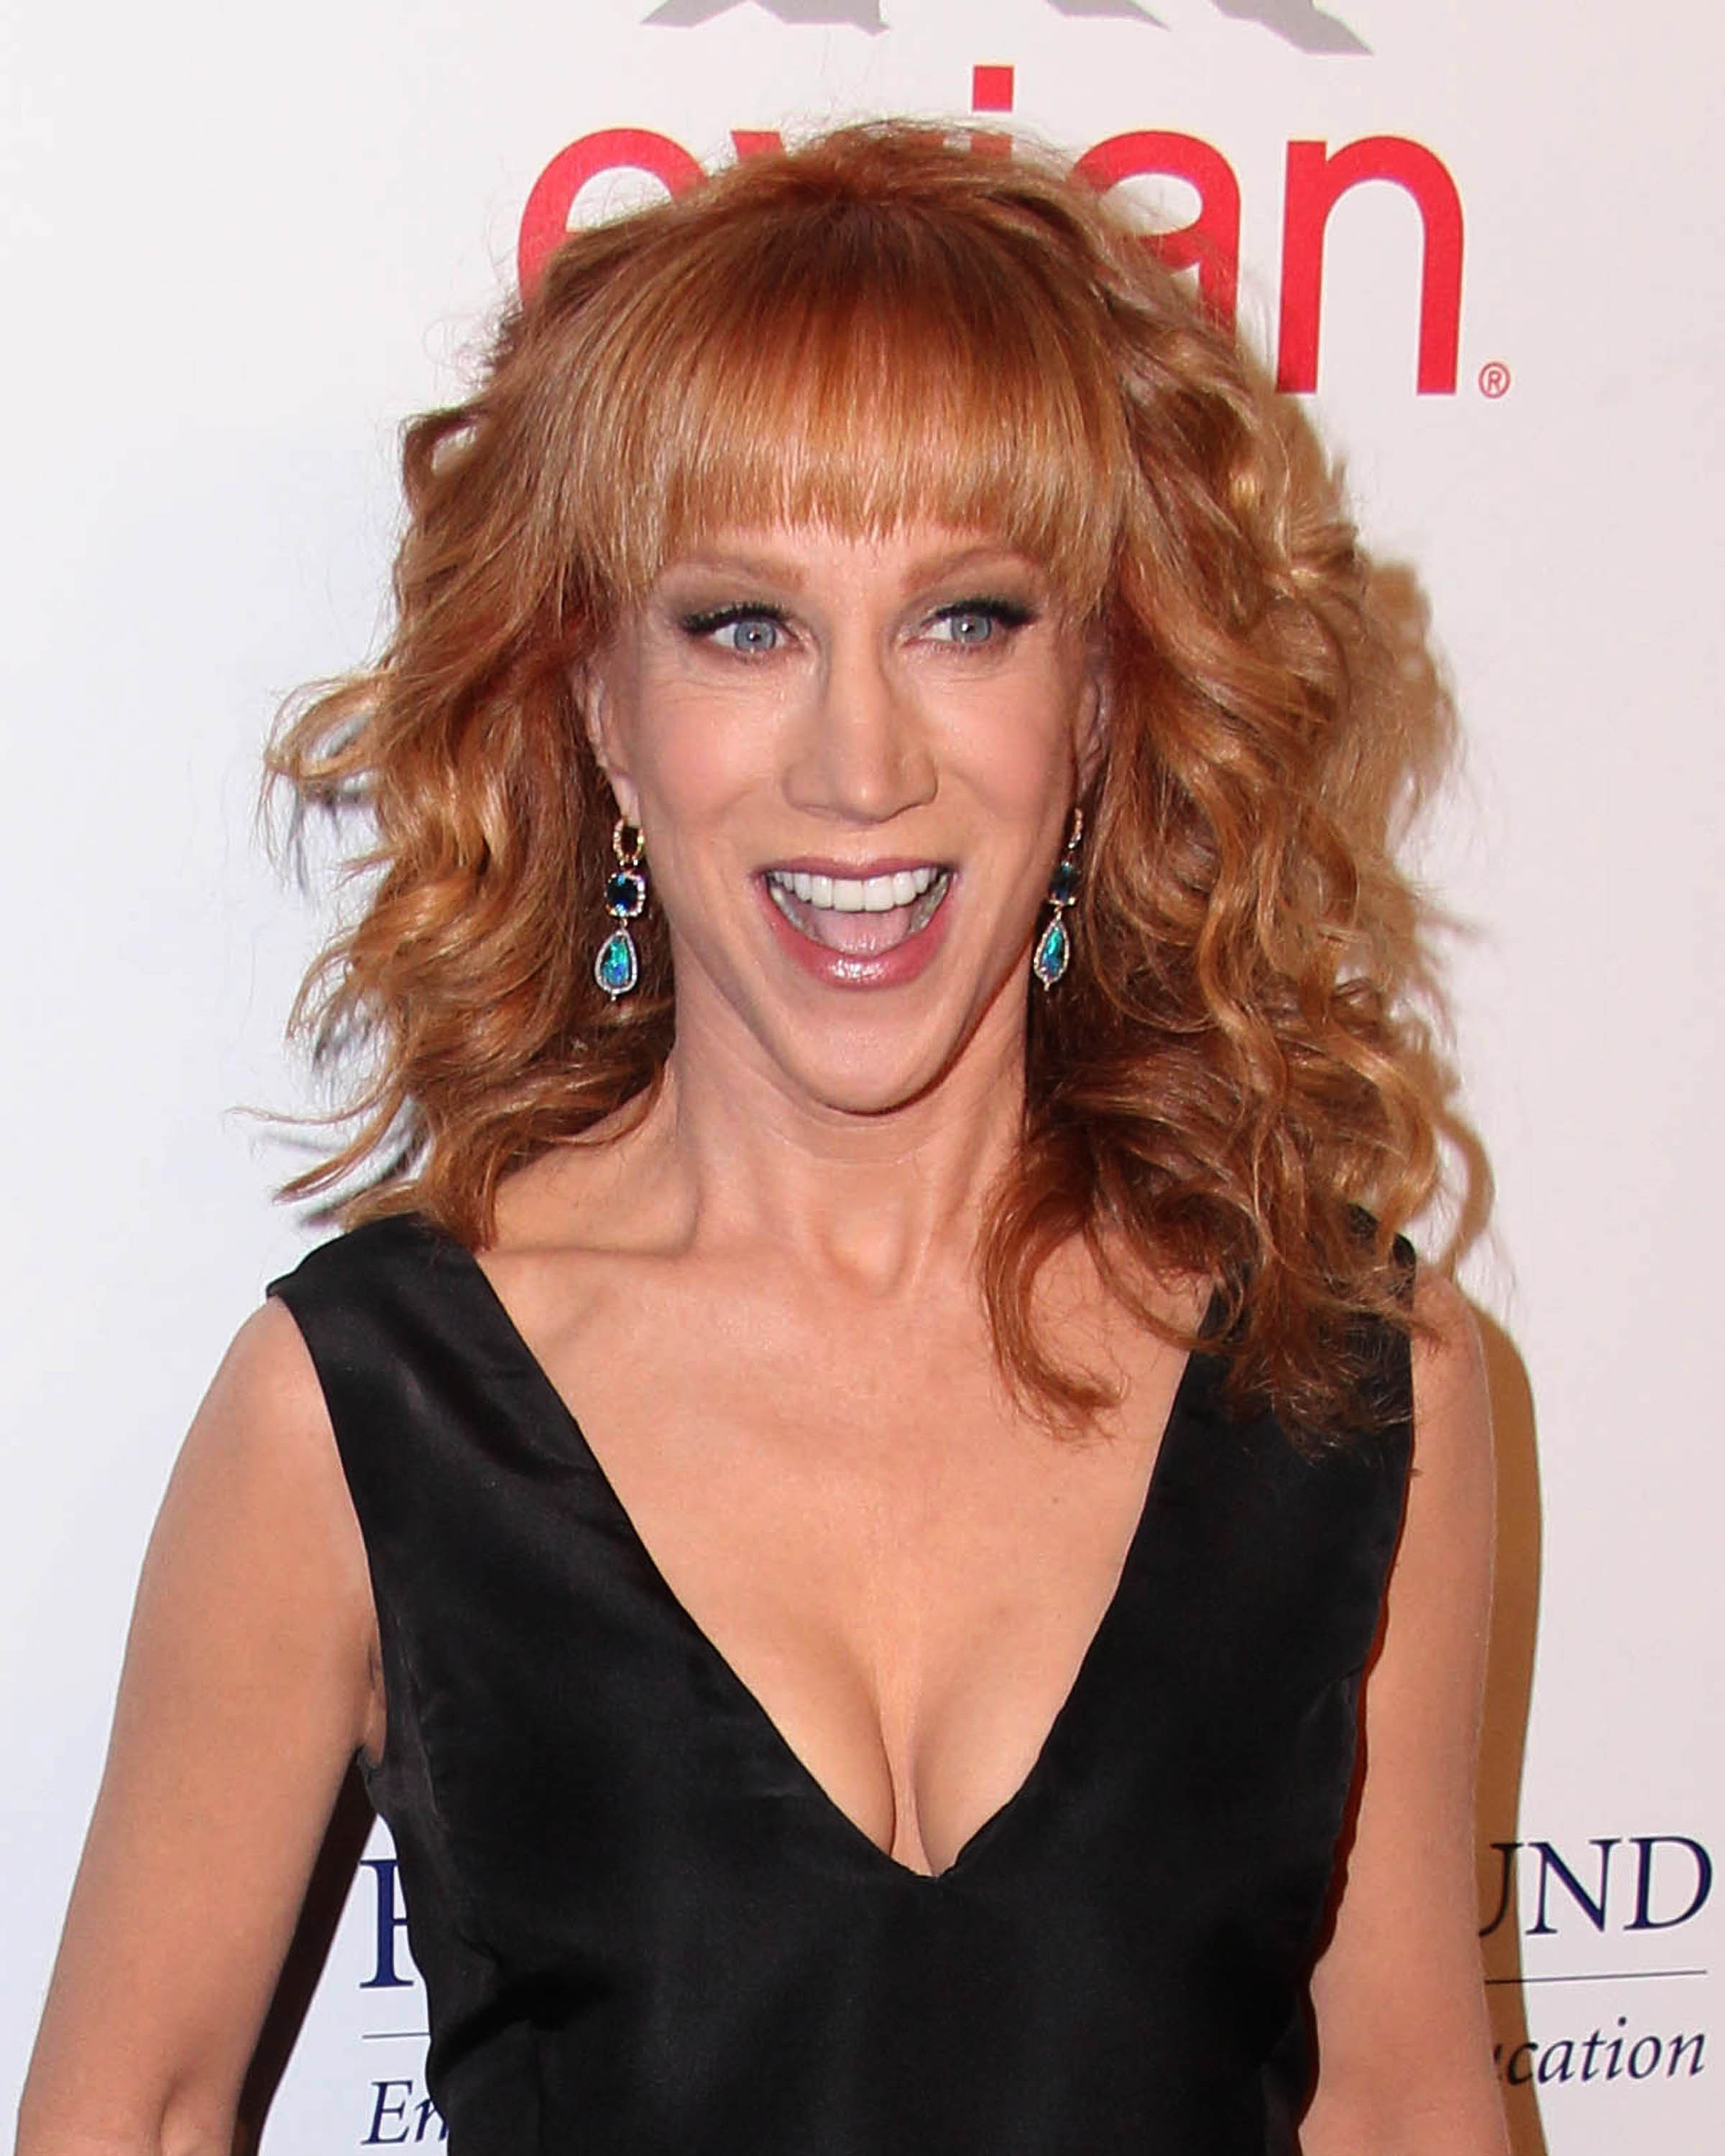 Party Line: Happy Election Day Kathy Griffin! Los Angeles